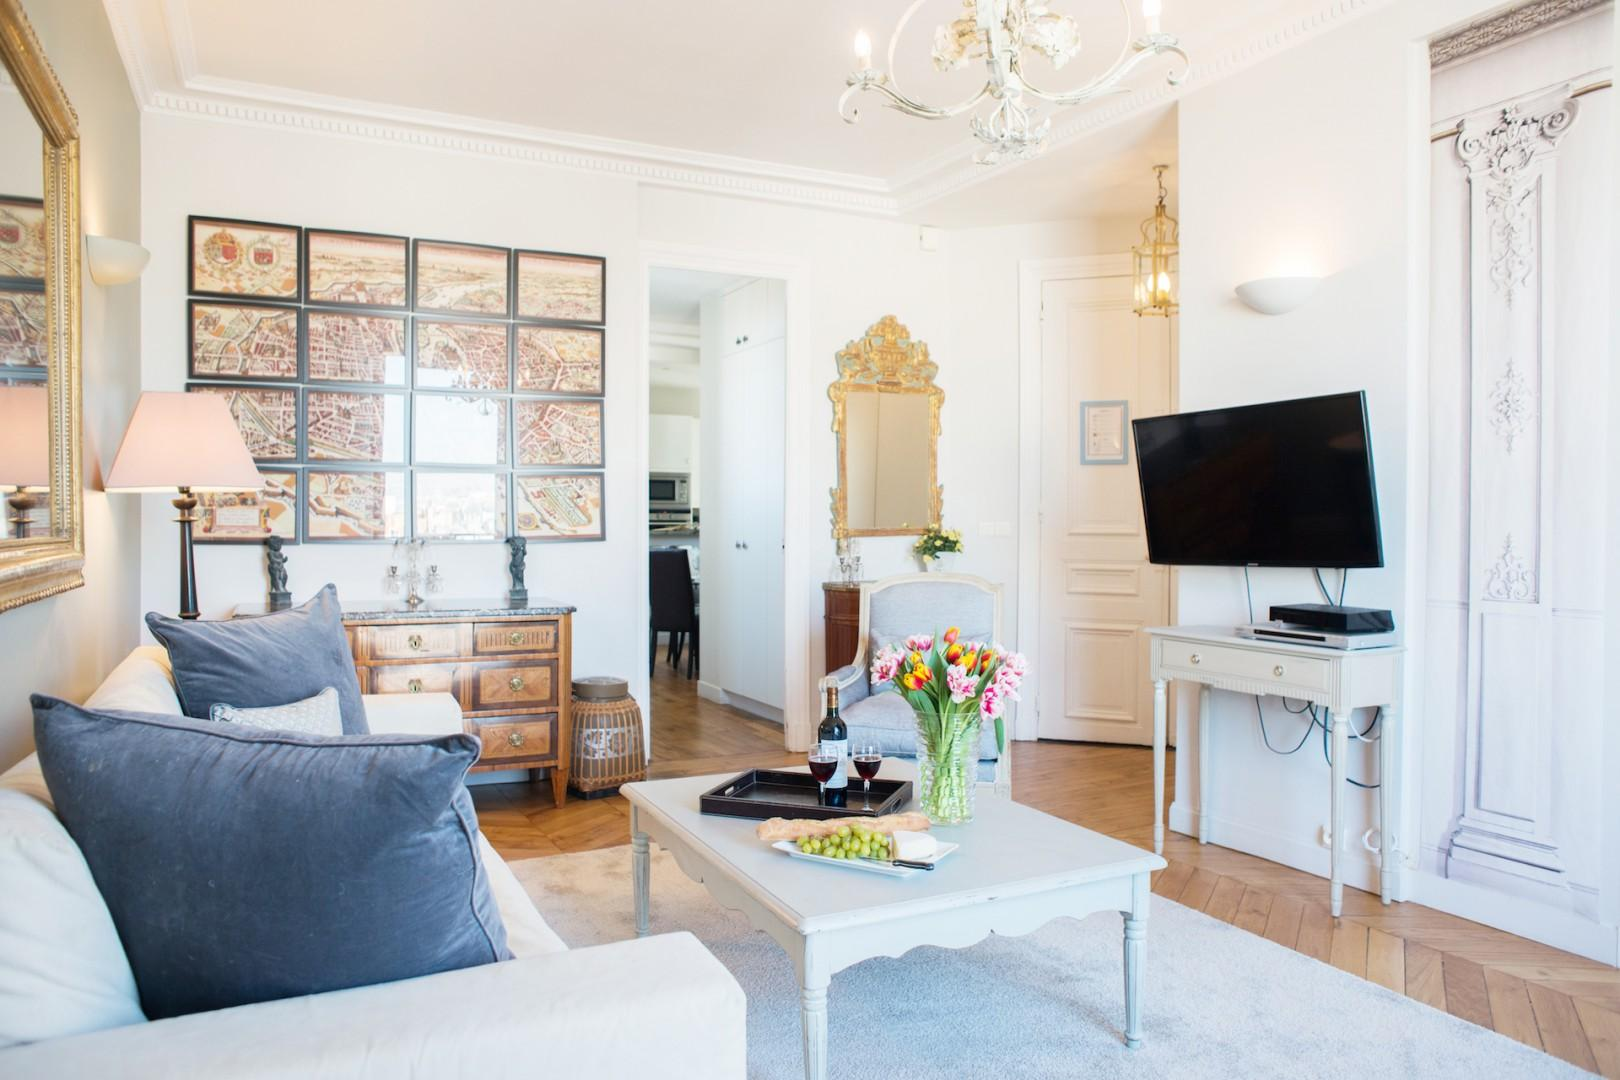 Enjoy your Paris stay in style in the comfortable living room.